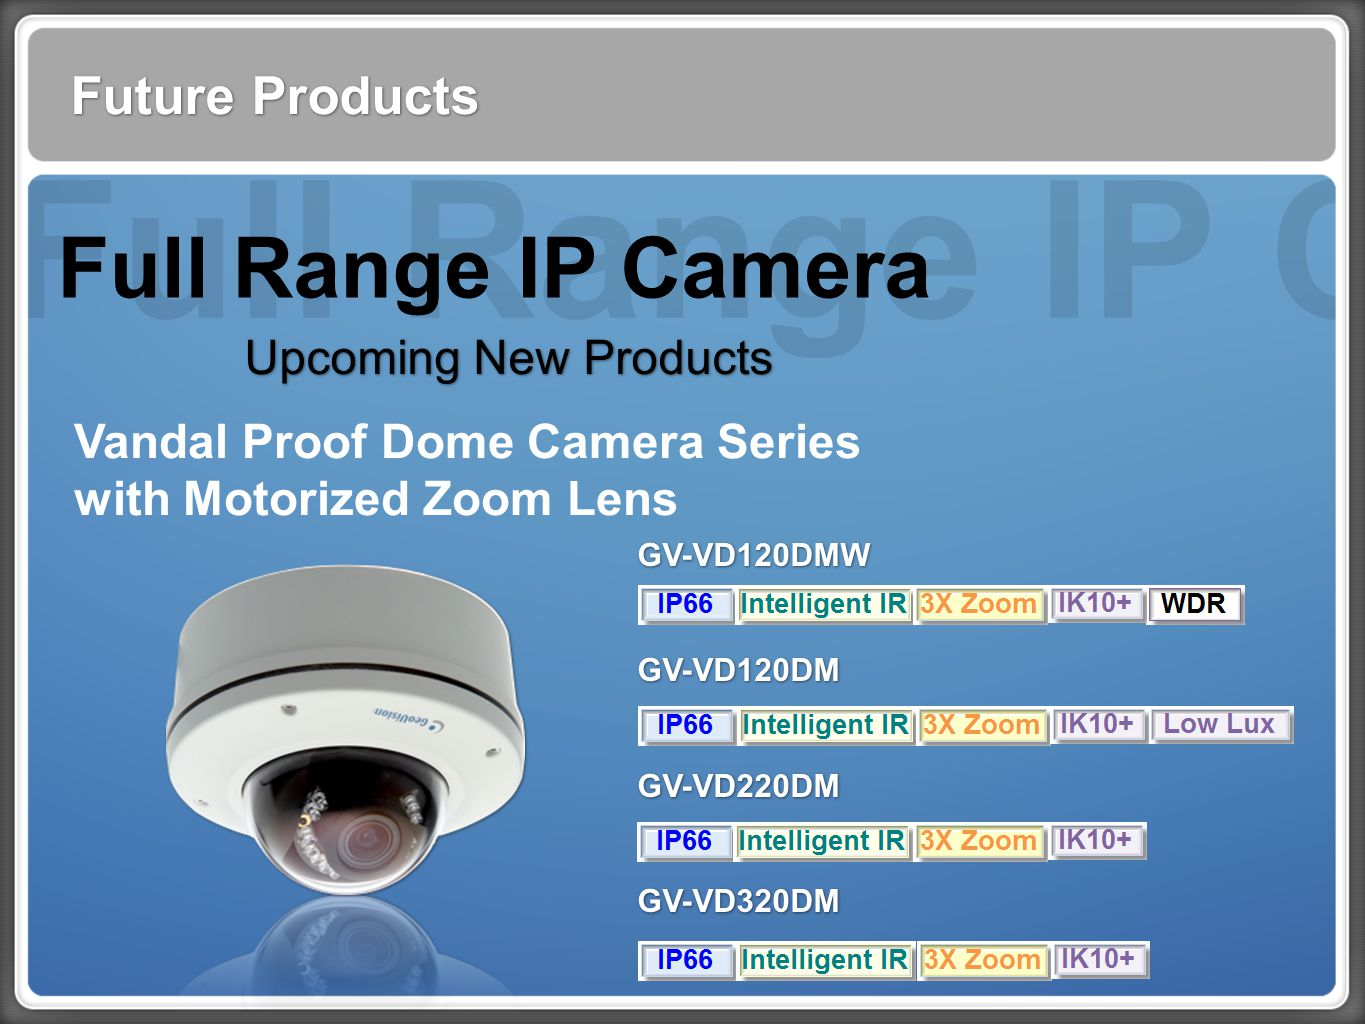 Full Range IP Cam Future Products Full Range IP Camera Upcoming New Products Vandal Proof Dome Camera Series with Motorized Zoom Lens GV-VD120DMW GV-VD120DM GV-VD220DM GV-VD320DM GV-VD120DMW GV-VD120DM GV-VD220DM GV-VD320DM